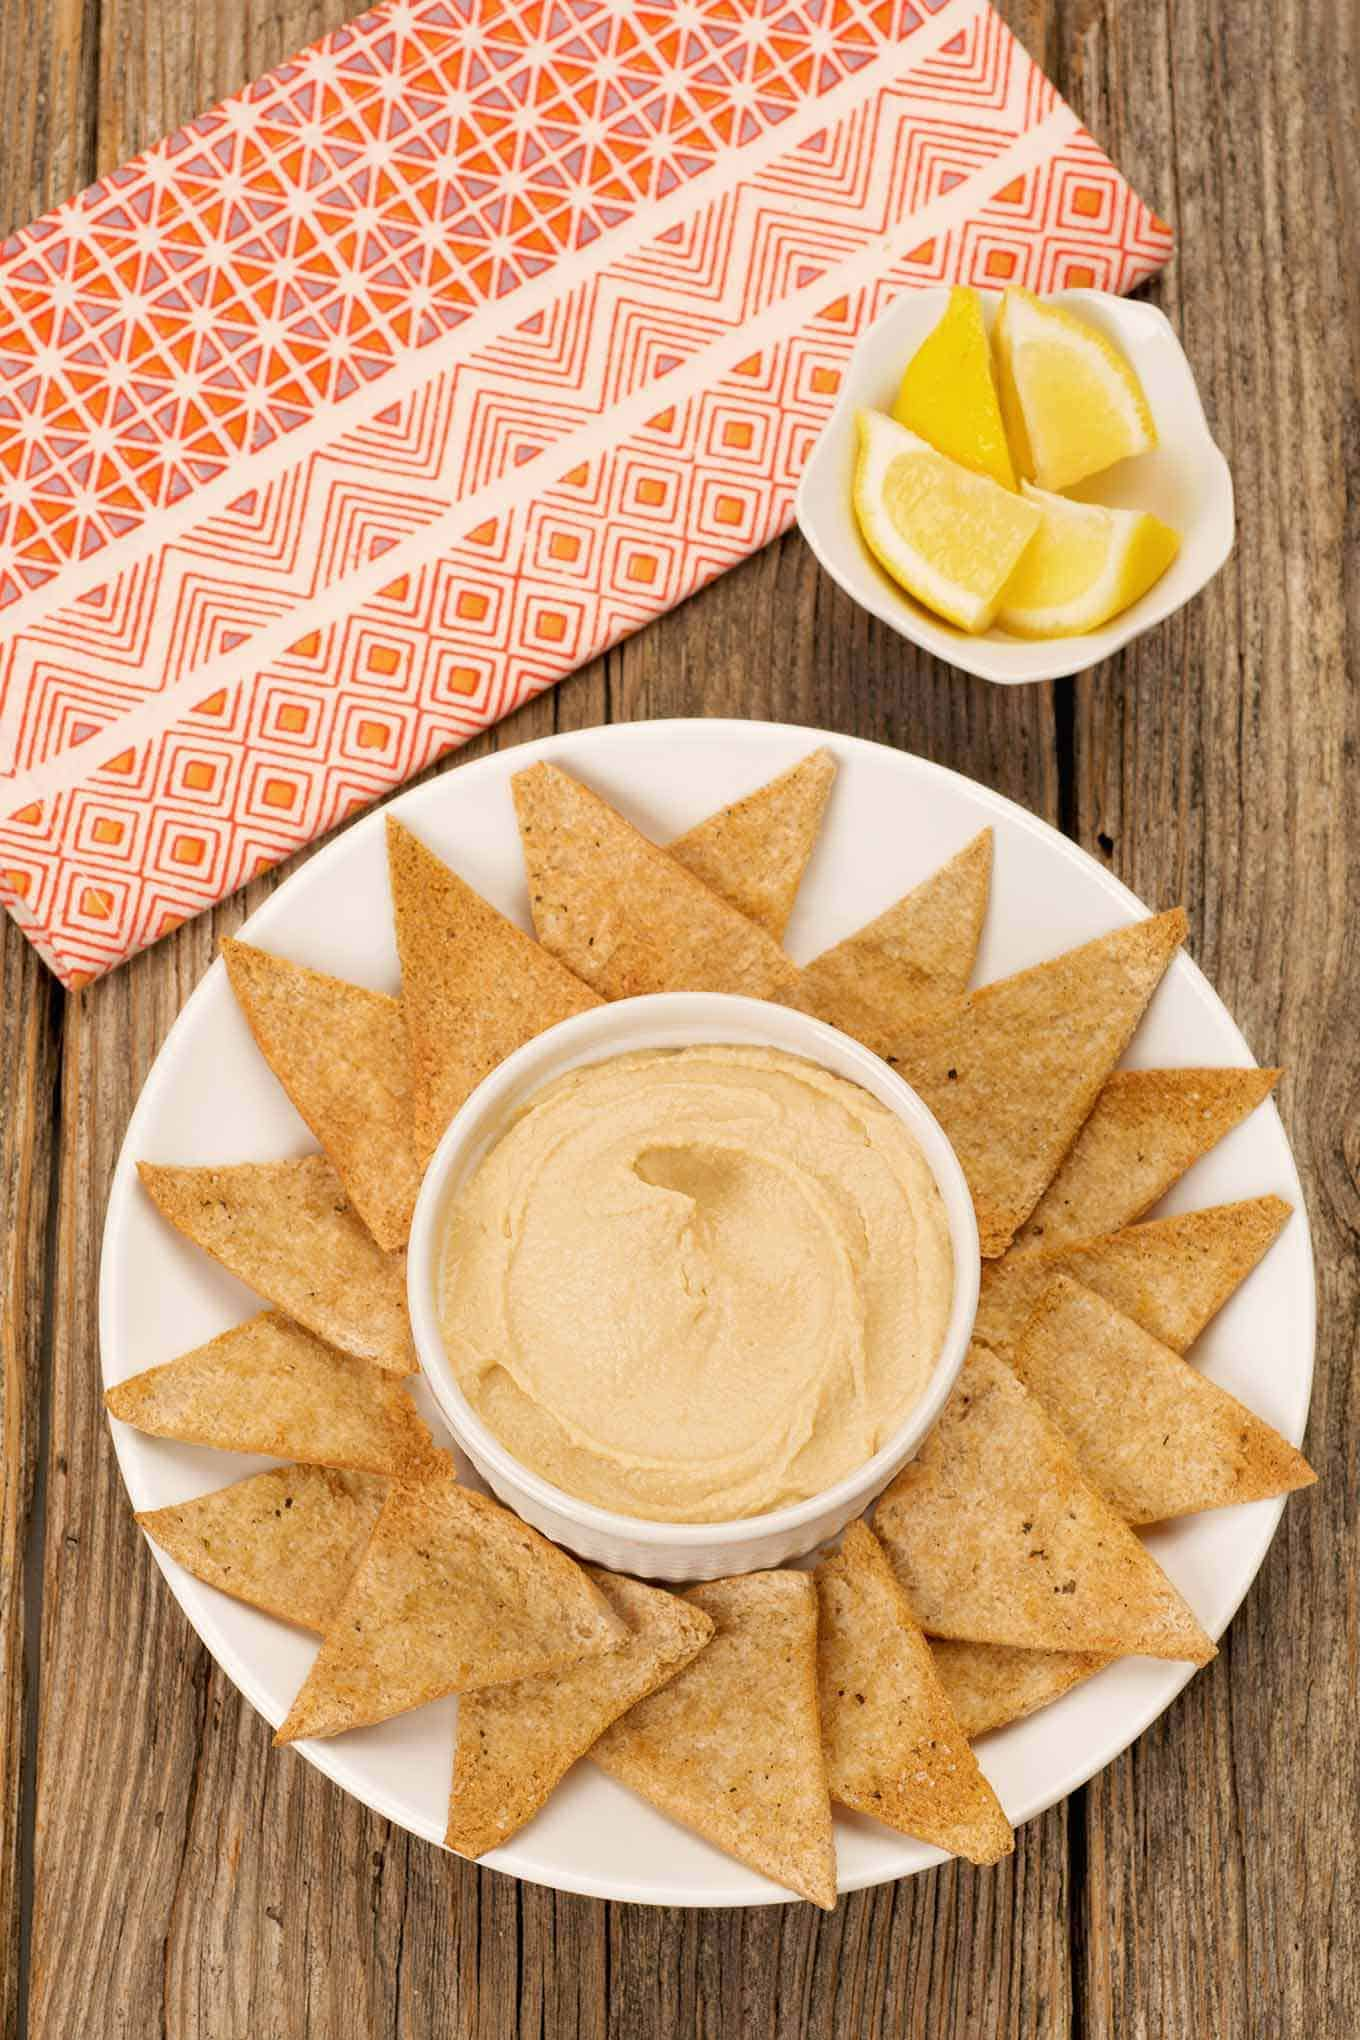 Serving plate with a bowl of hummus in the center, pita triangles surrounding it and lemon wedges in a small bowl on the side.